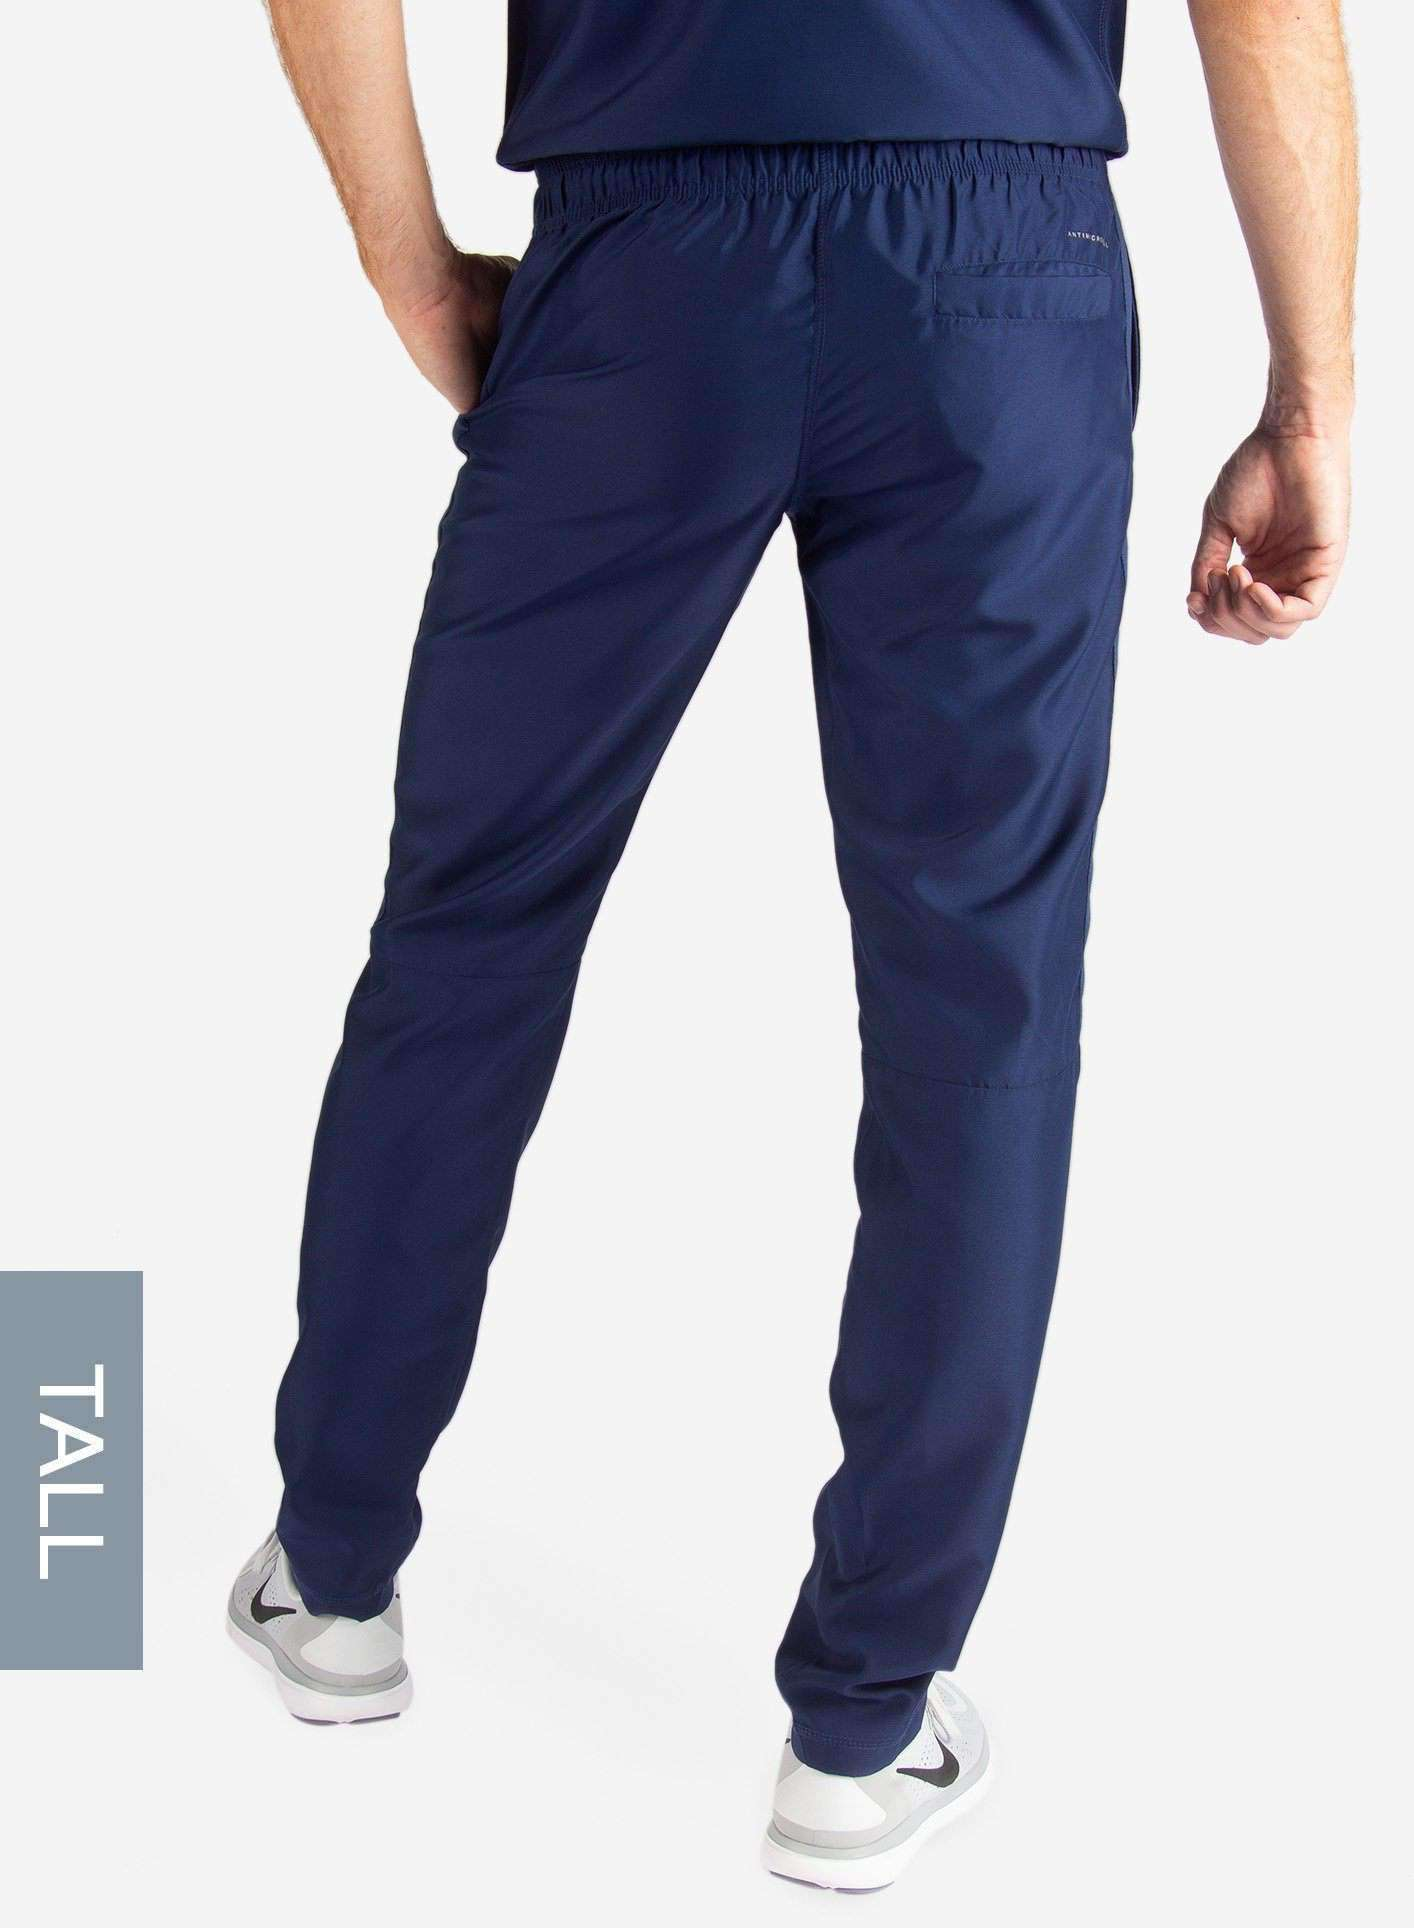 Men's Tall Slim Fit Scrub Pants in Navy Blue Back View